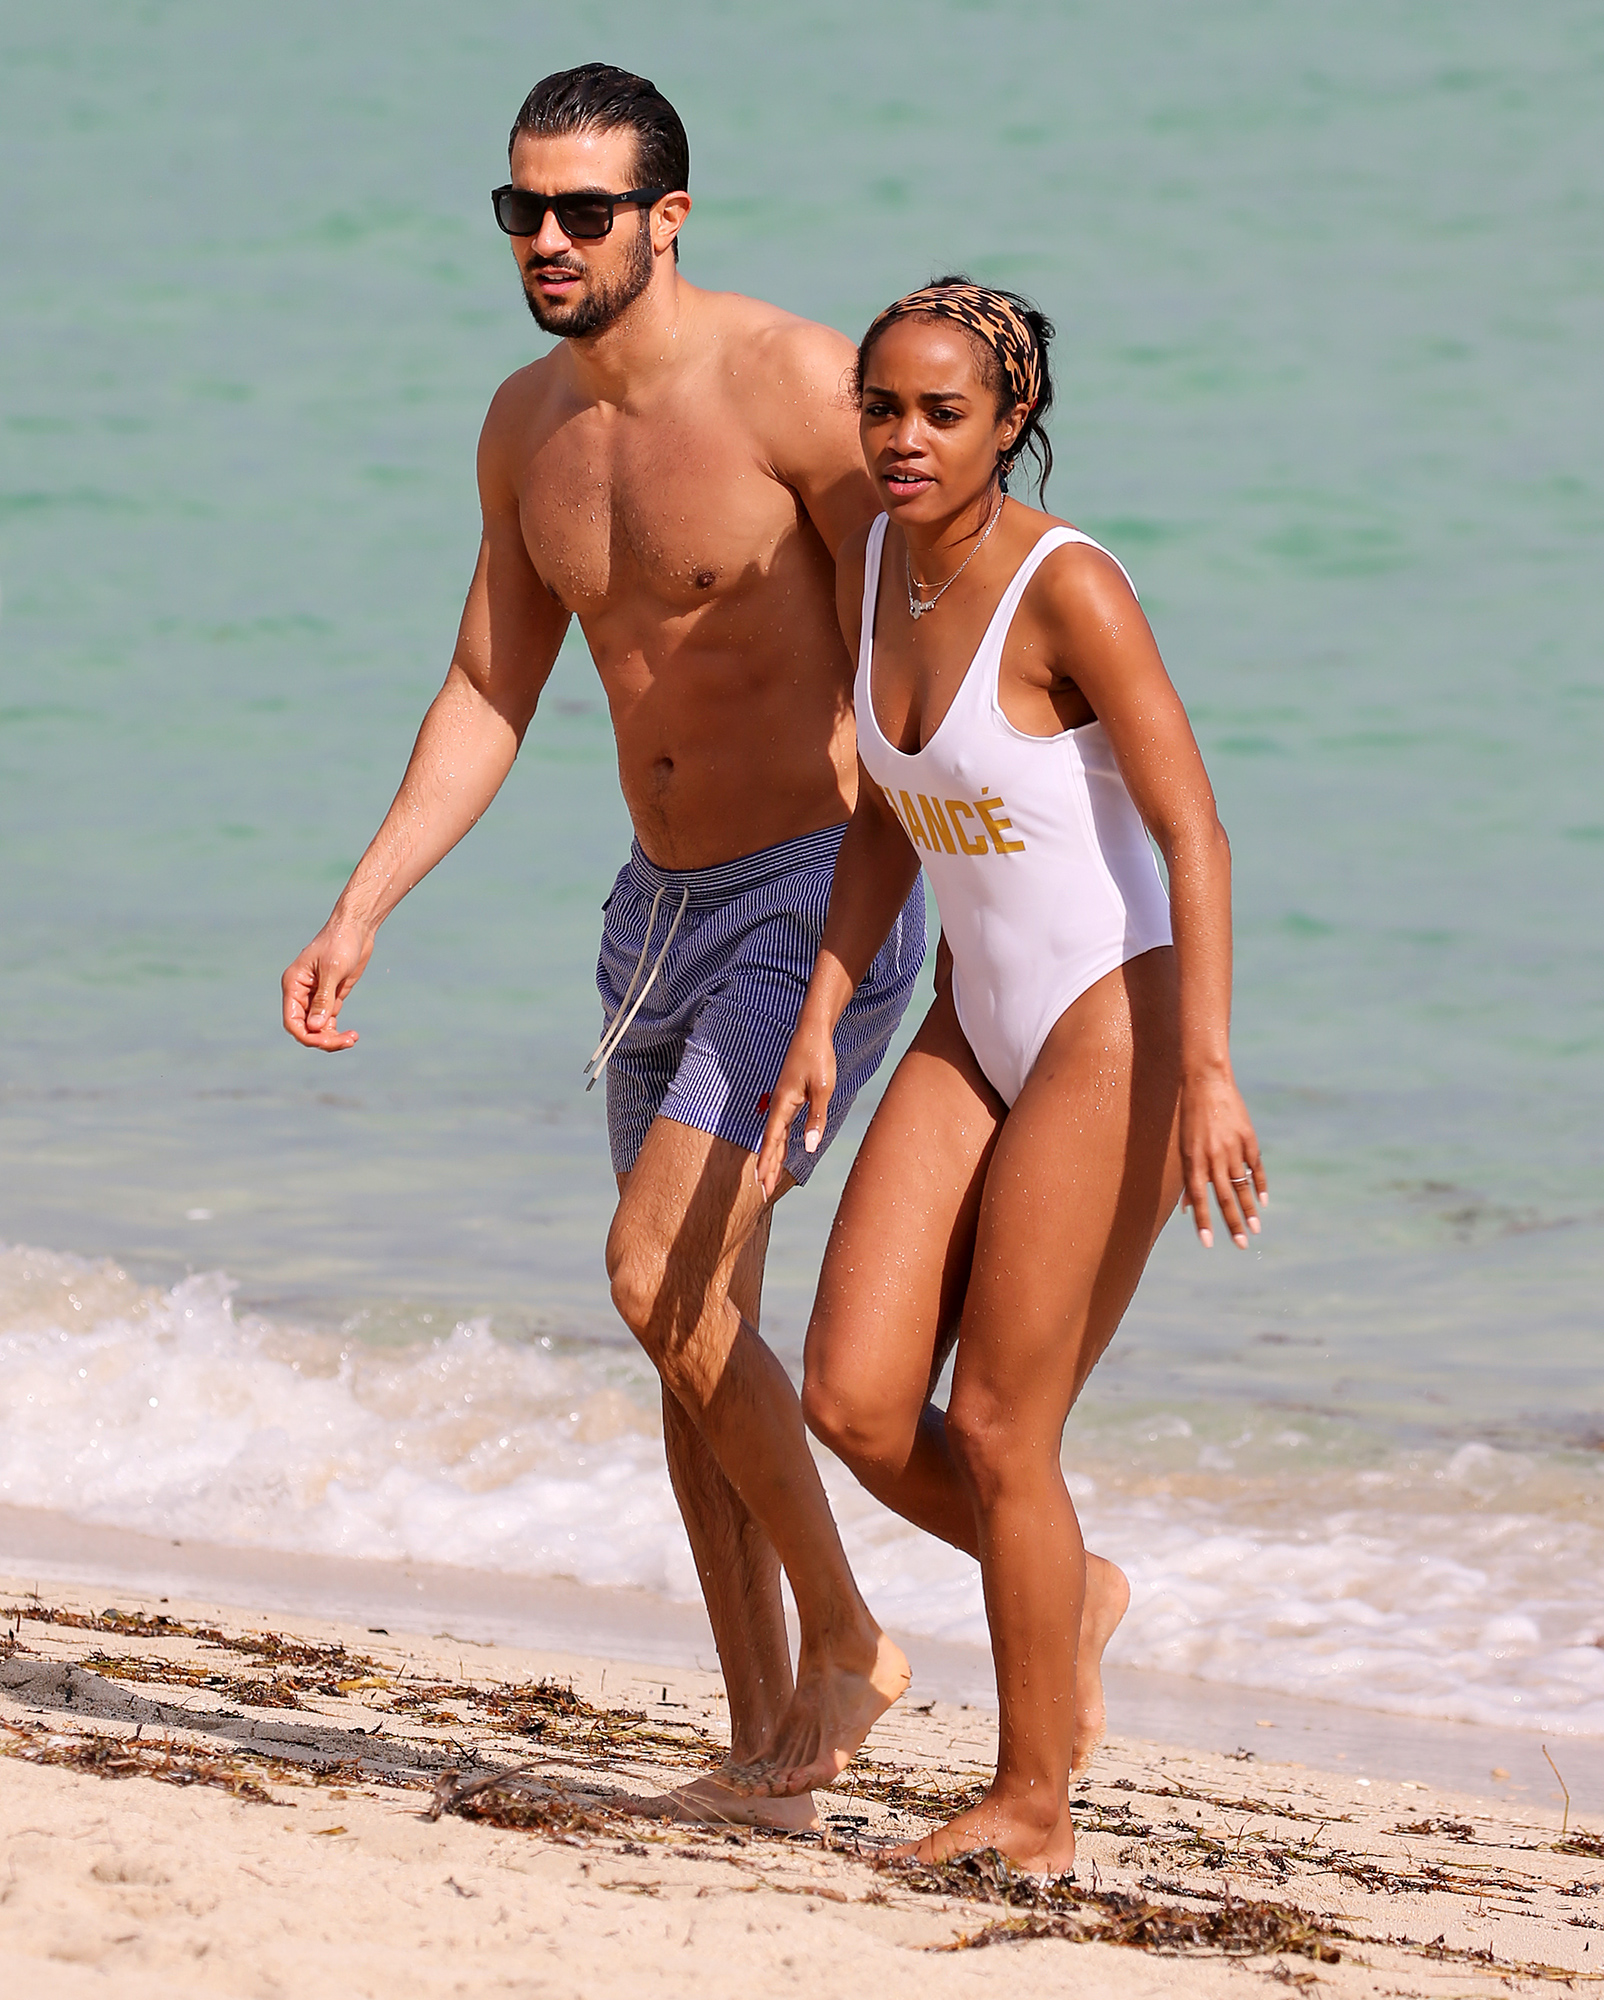 The Bachelorette Rachel Lindsay and her fiancÈ Bryan Abosolo show off their beach bodies and plenty of PDA as they take a dip in the ocean in Miami